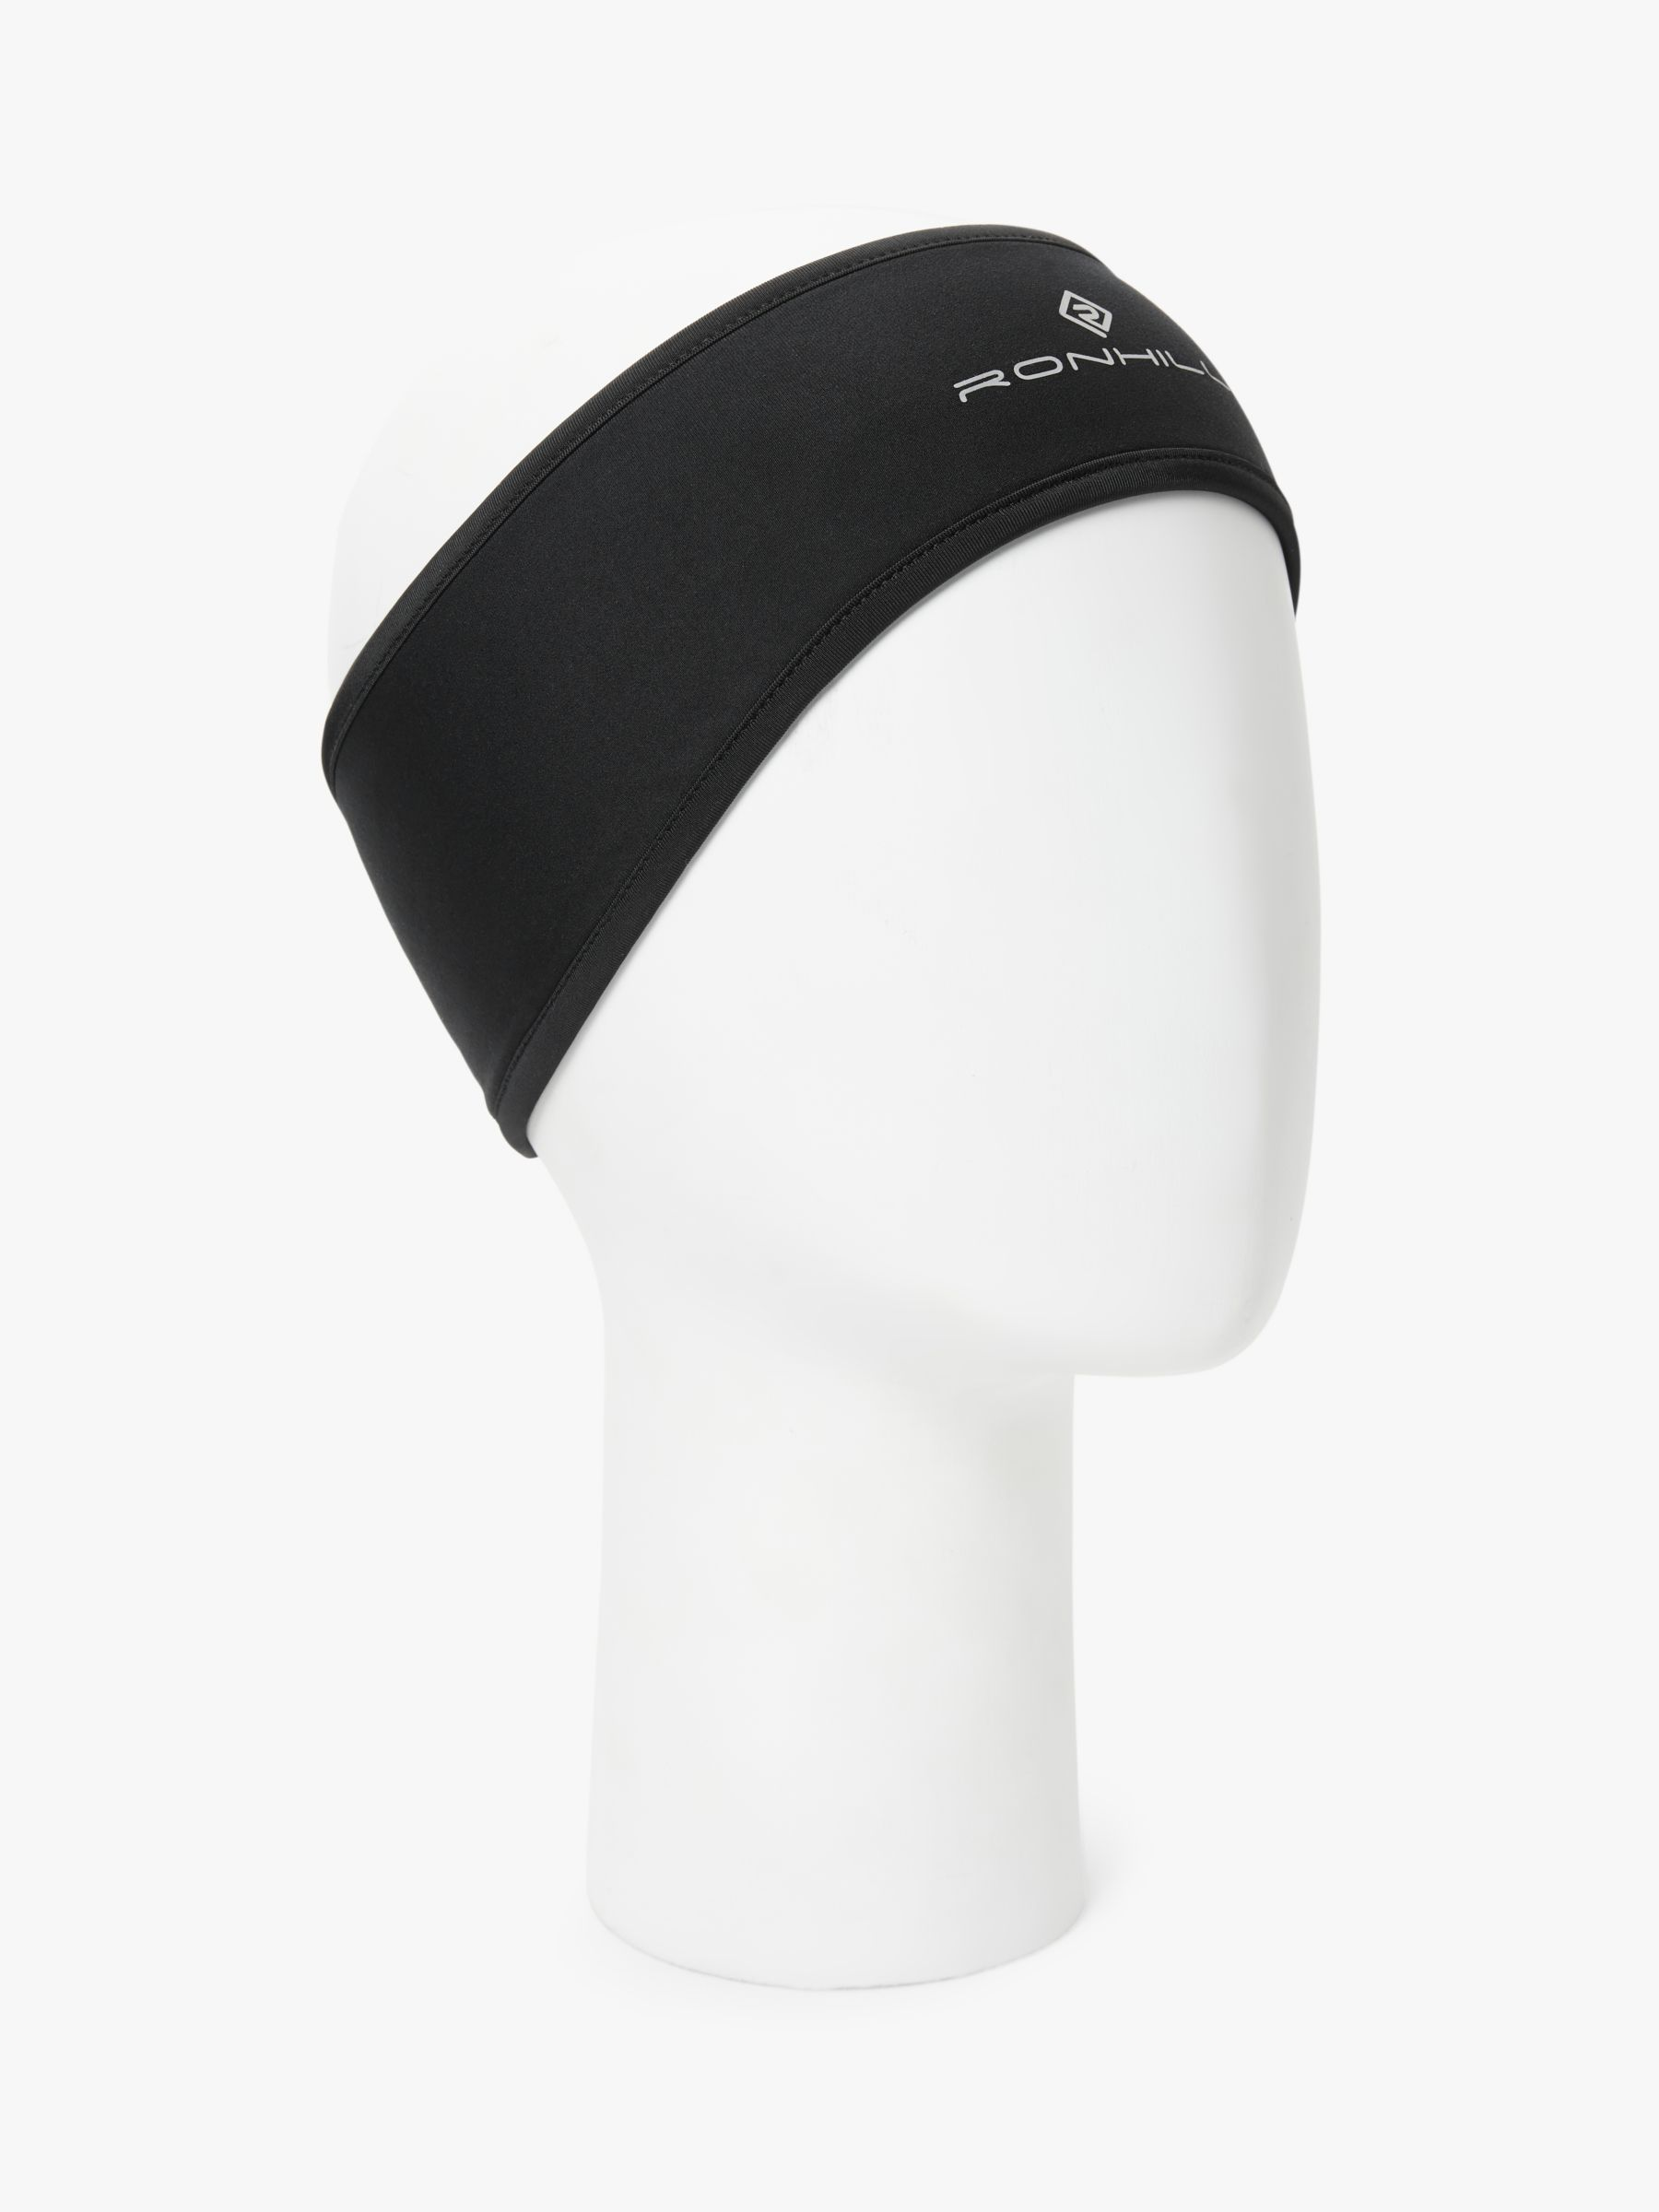 Ronhill Ronhill Wind-Block Headband, All Black